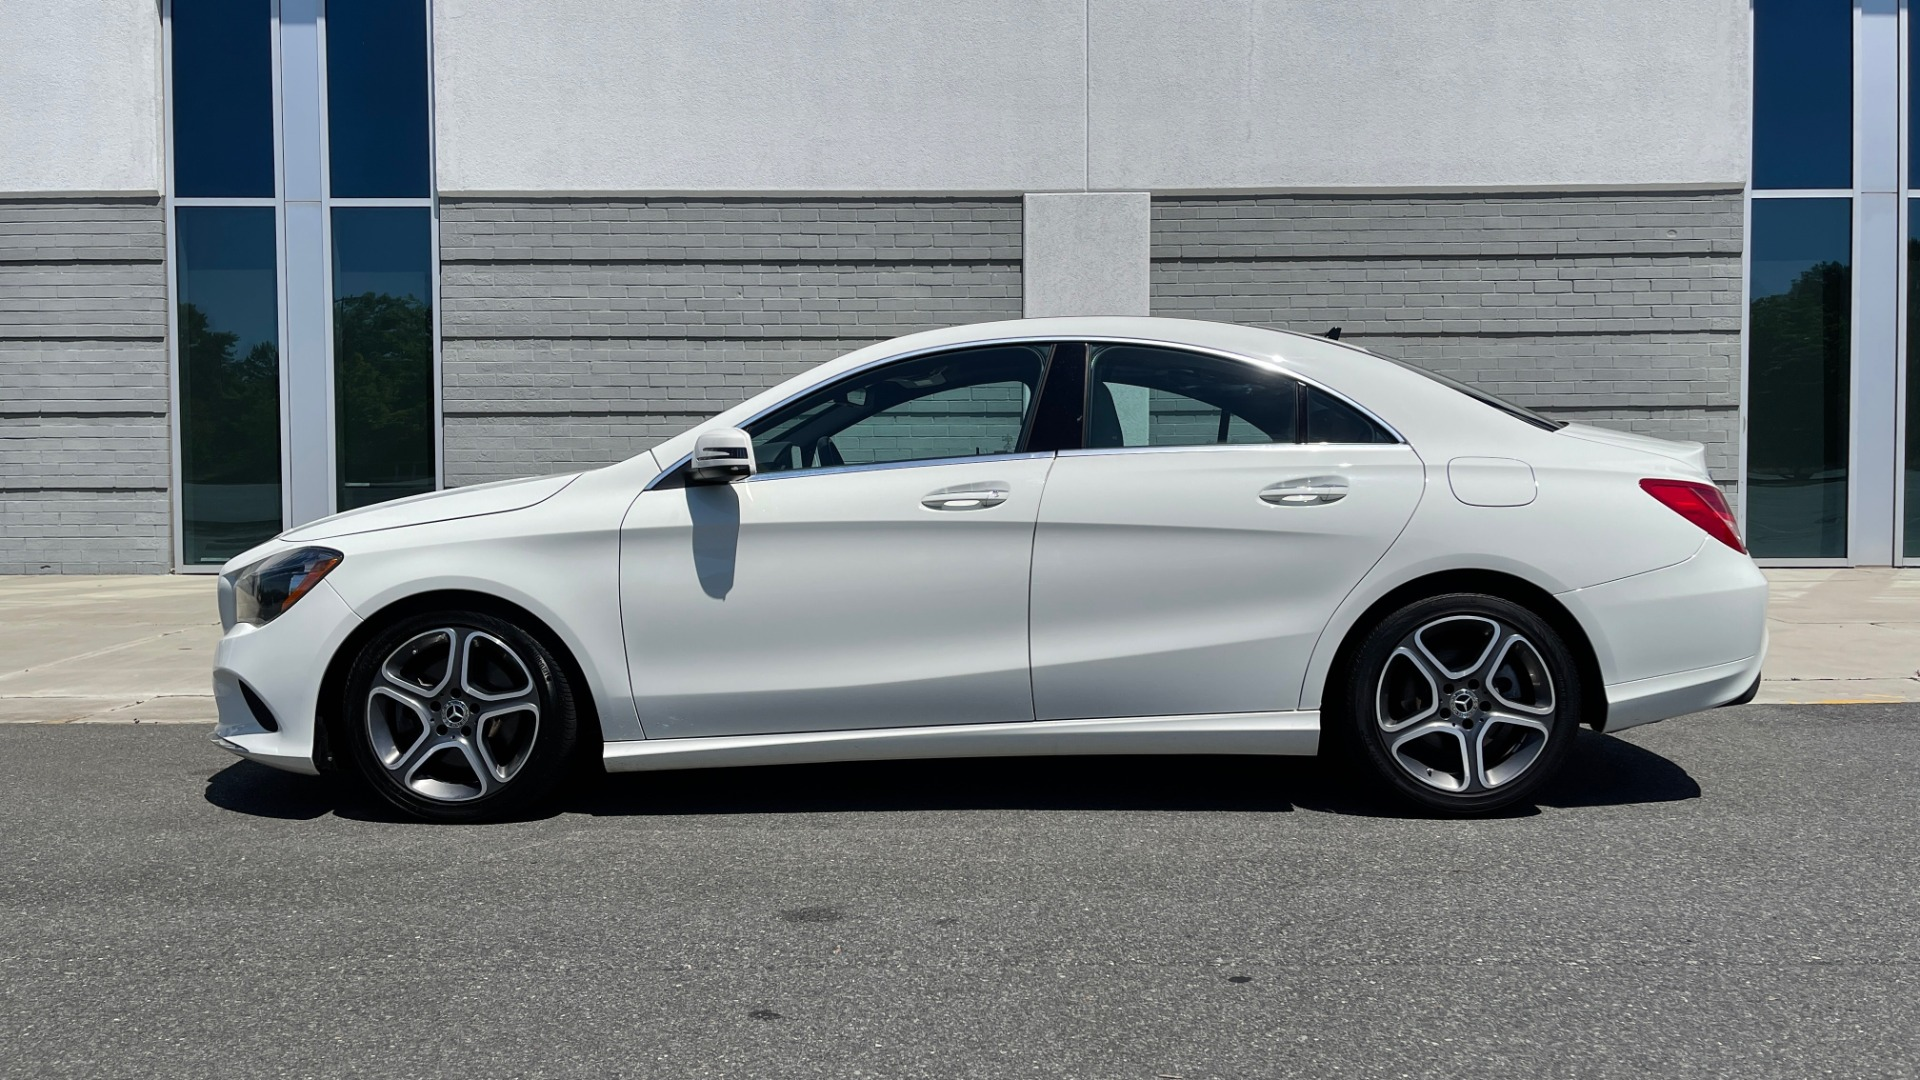 Used 2018 Mercedes-Benz CLA 250 PREMIUM / CONV PKG / APPLE / PANO-ROOF / REARVIEW for sale $29,795 at Formula Imports in Charlotte NC 28227 6